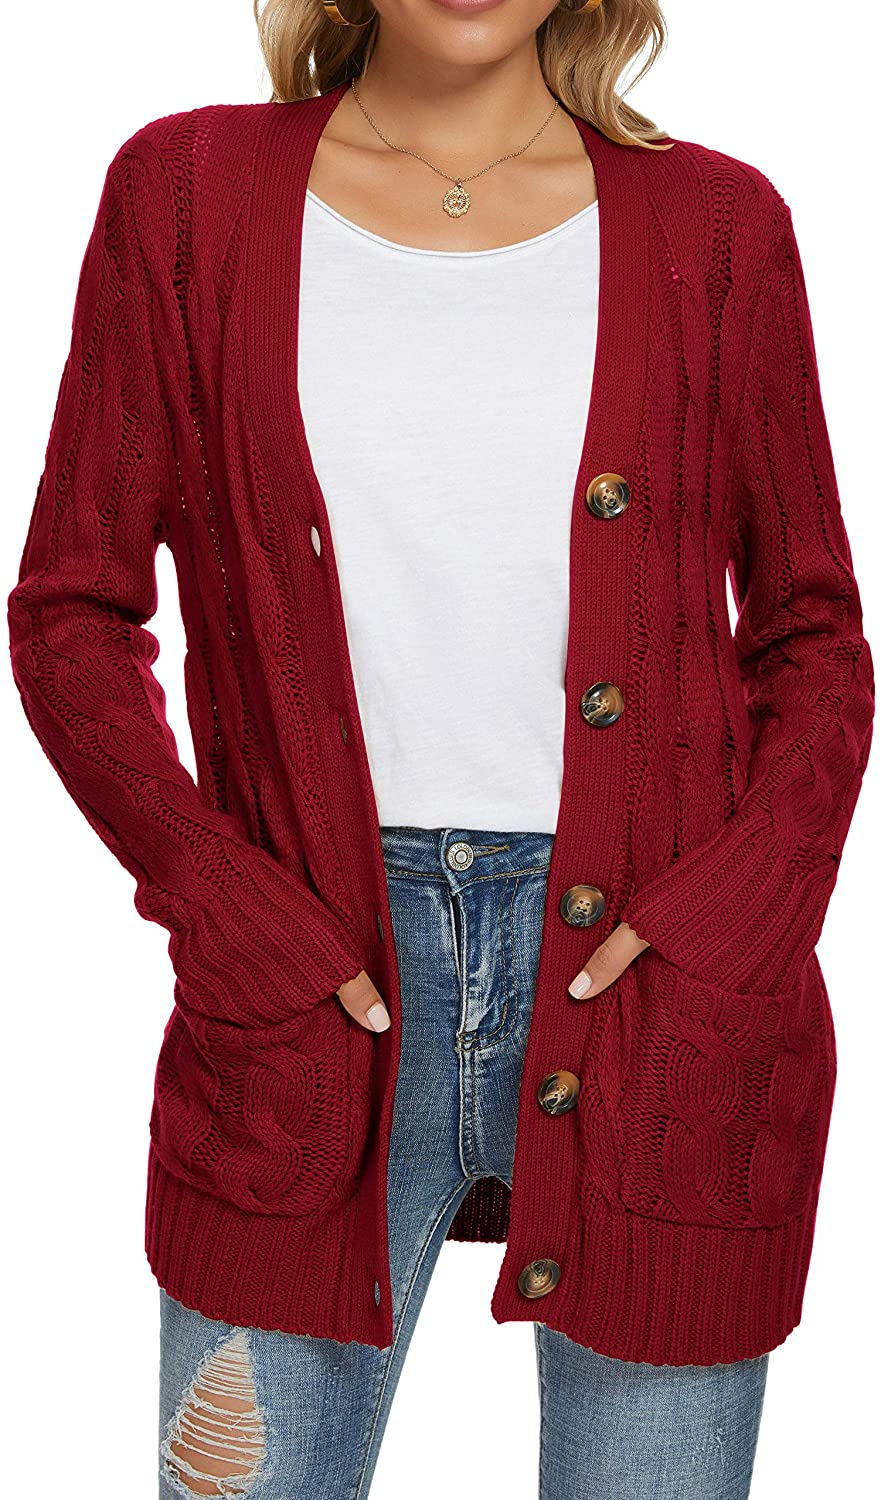 UEU Women's Long Sleeve Open Front Button Down Cable Knit Cardigan Sweater with Pockets